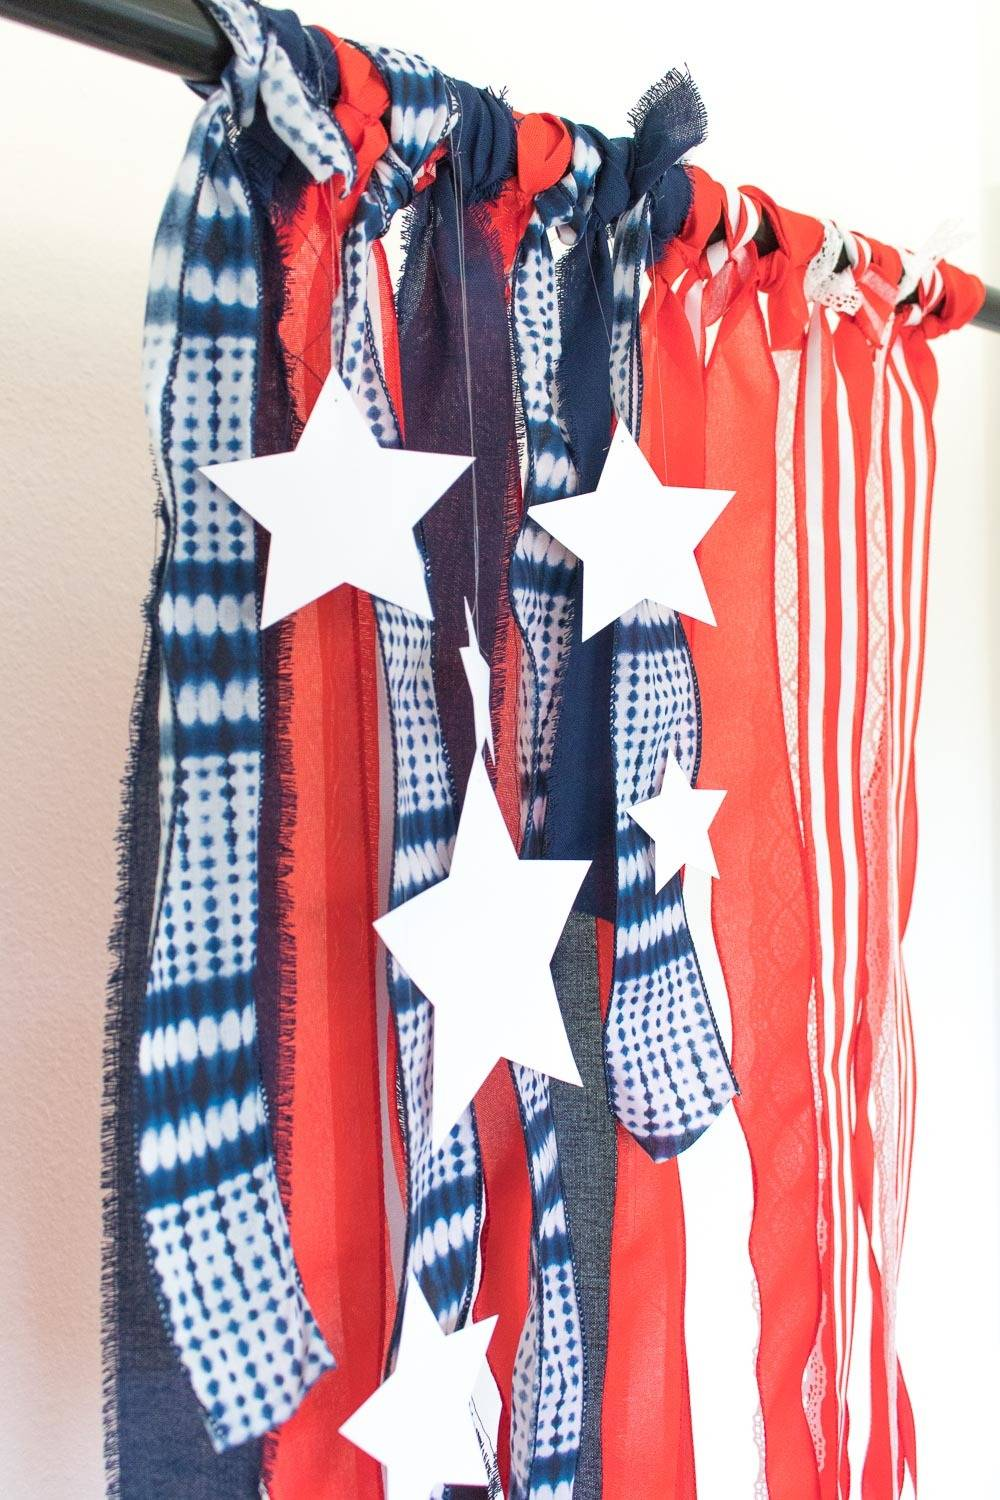 4th of July! Patriotic Ribbon Photo Backdrop